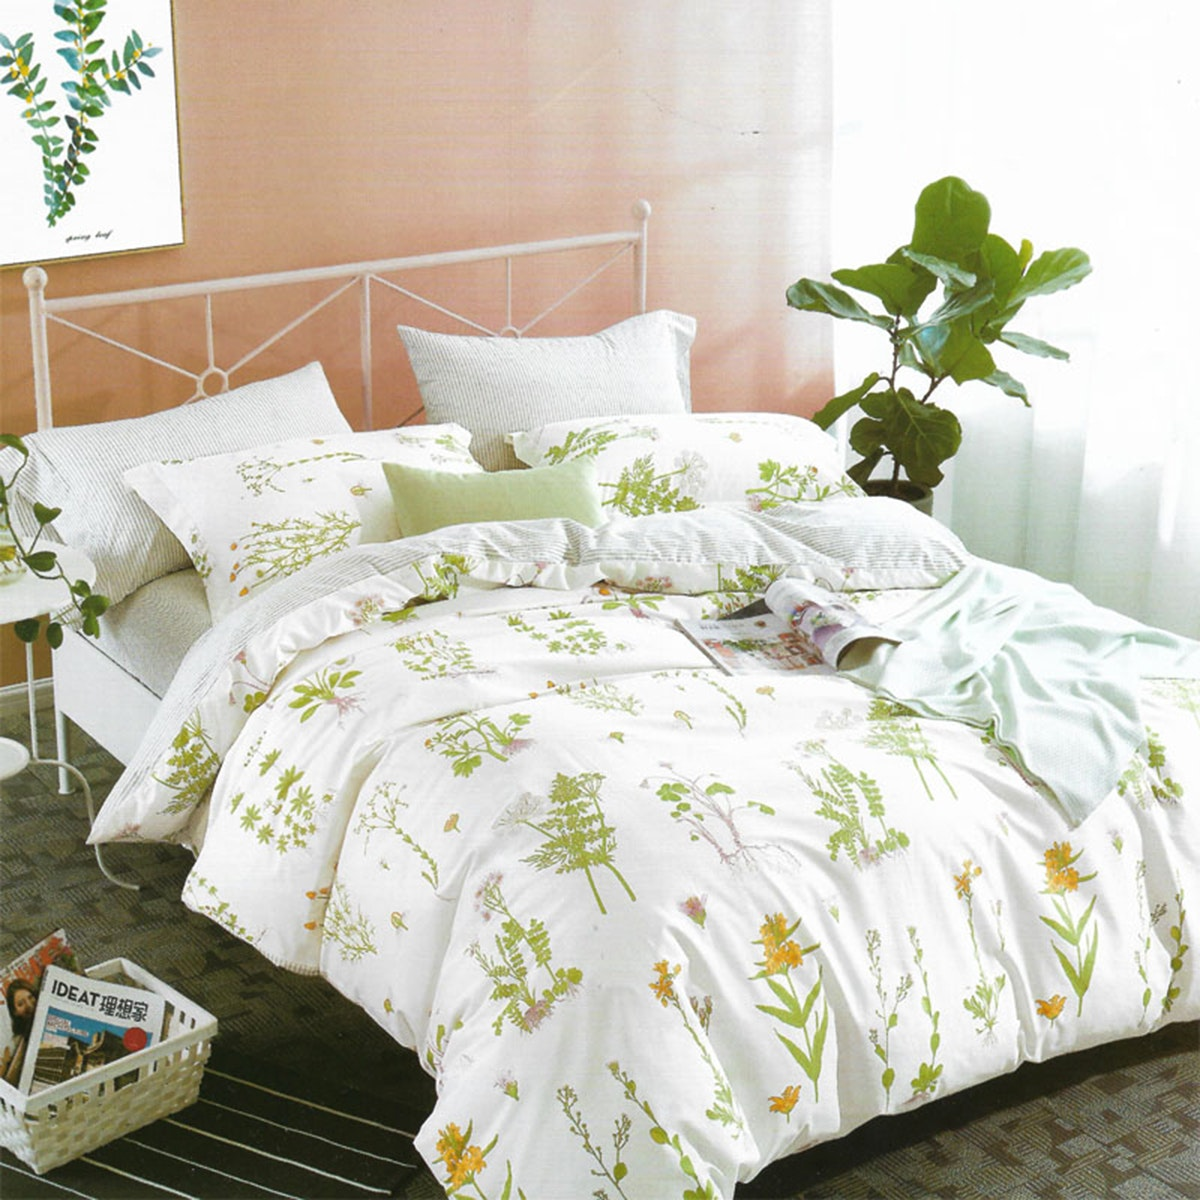 Sleep Buddy Set Sprei dan Bed Cover White Garden Cotton Sateen 160x200x30